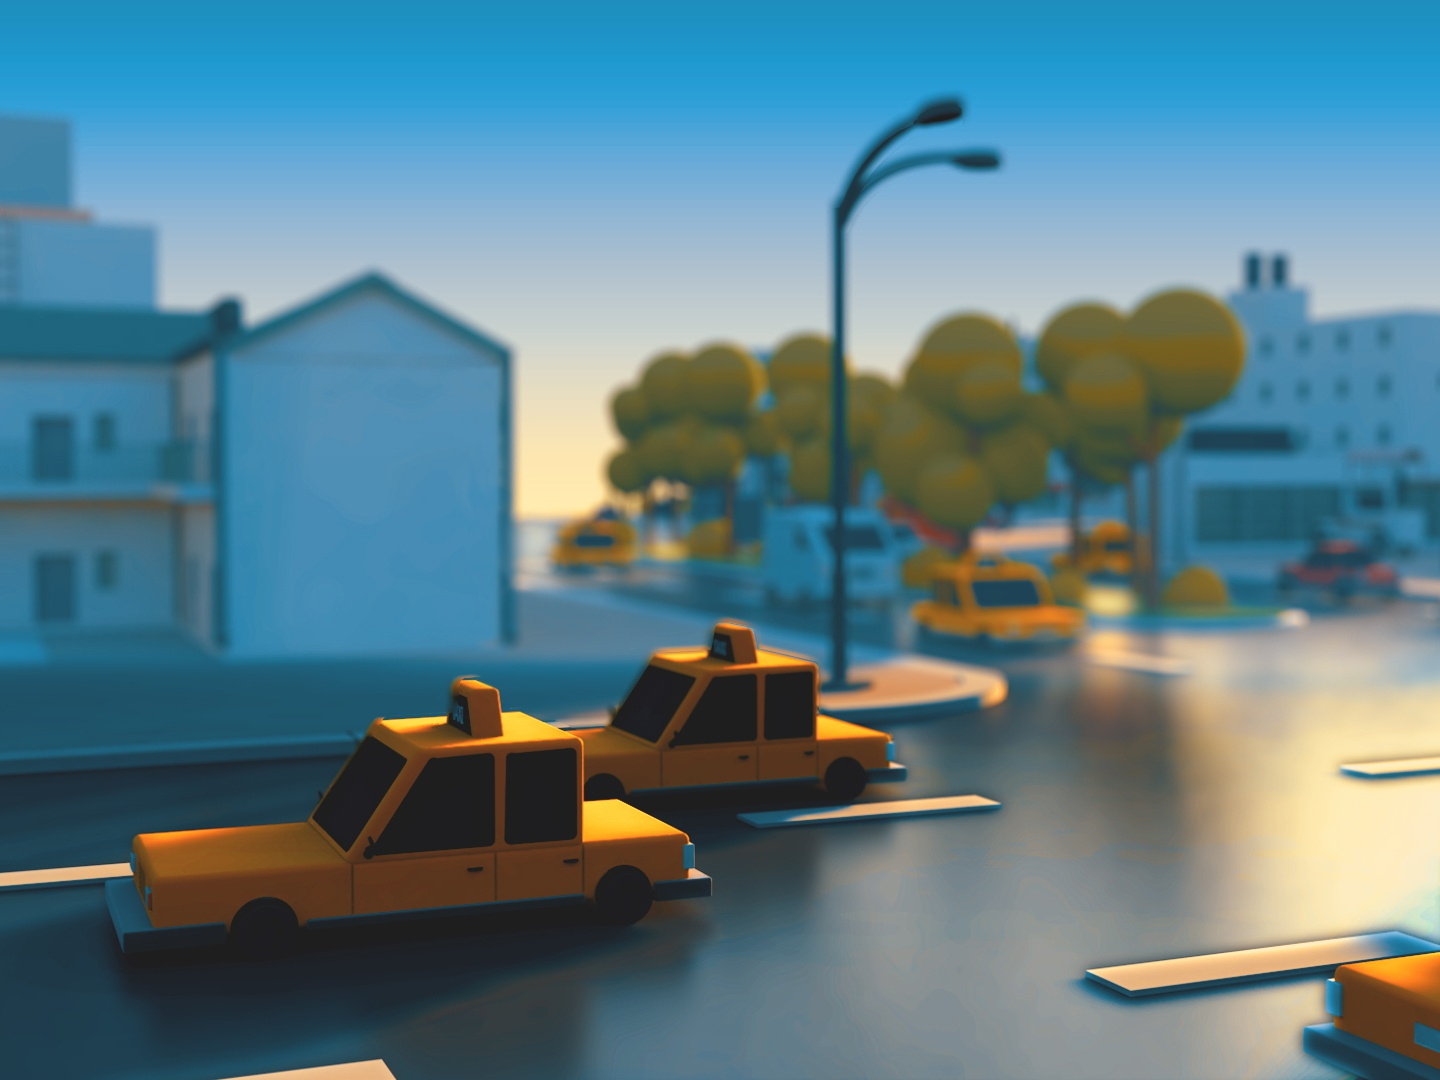 isometric town urban modeling model practice lowpoly taxi city town illustration isometric c4d cinema 4d 3d